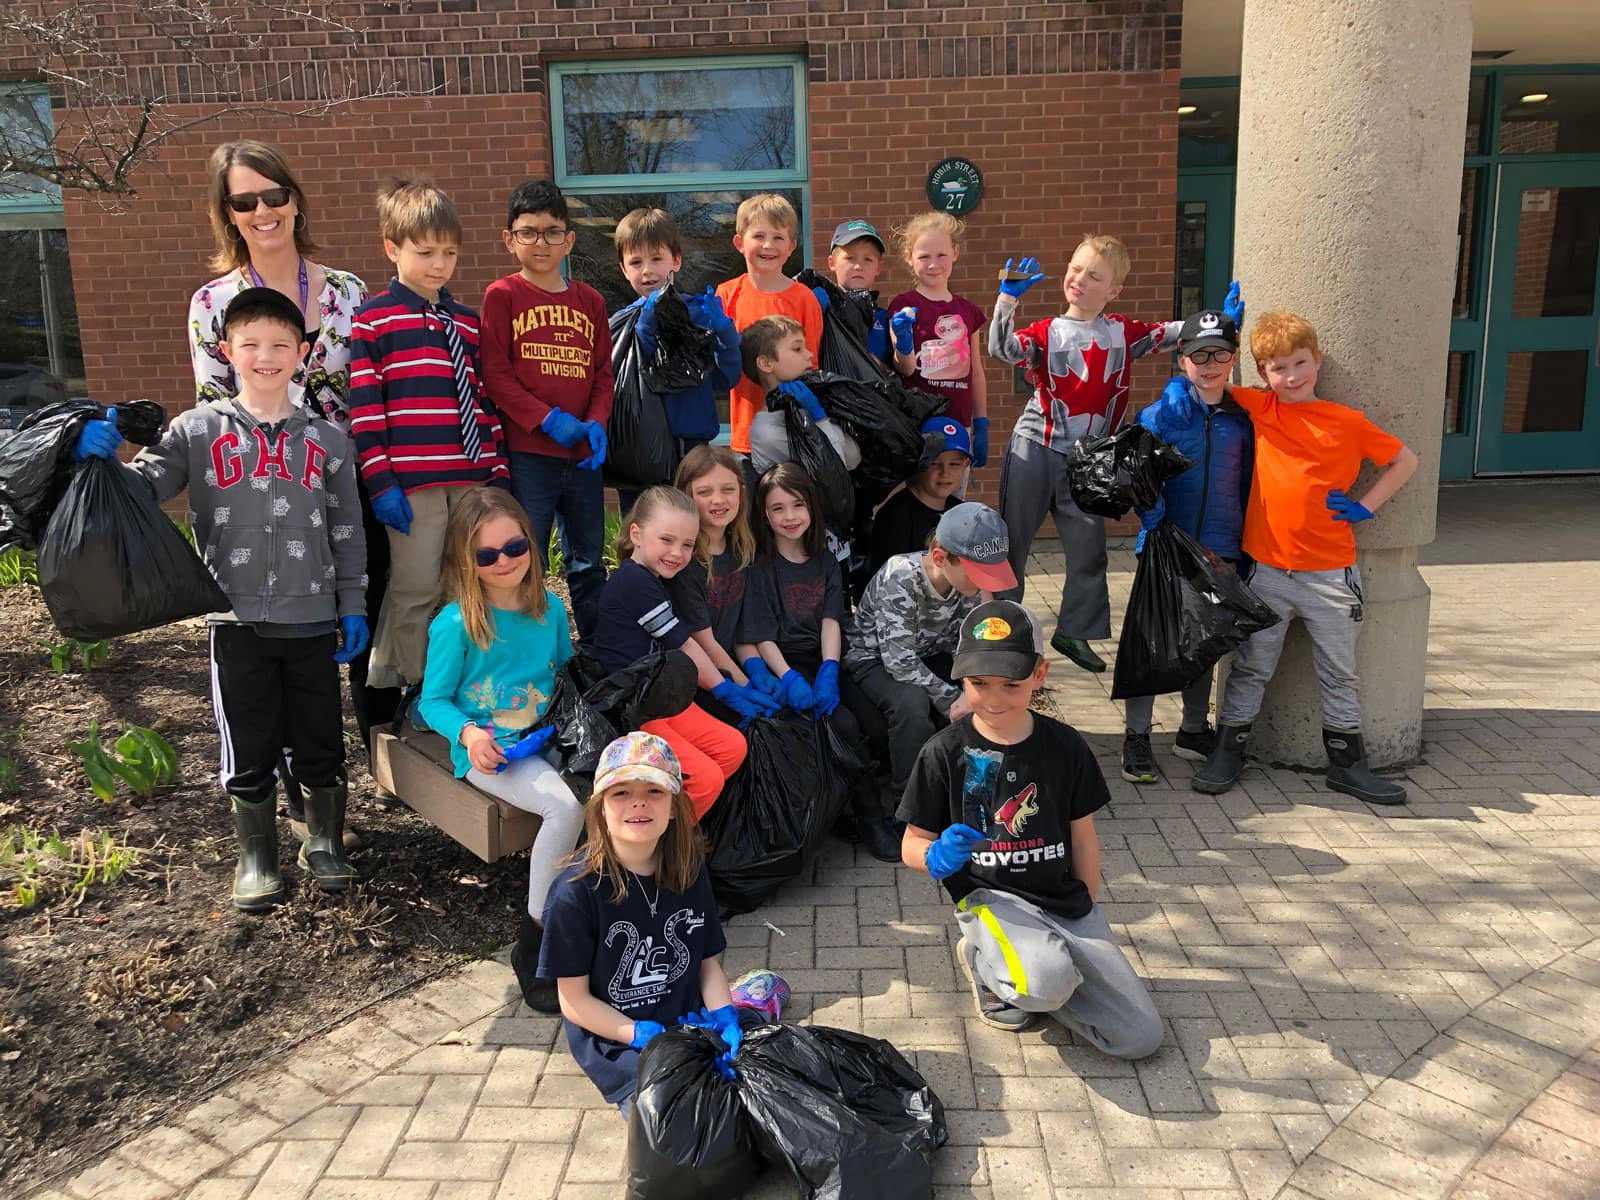 Mme. Charest's Grade 2 class at A. Lorne Cassidy school helped to clean up the school property.